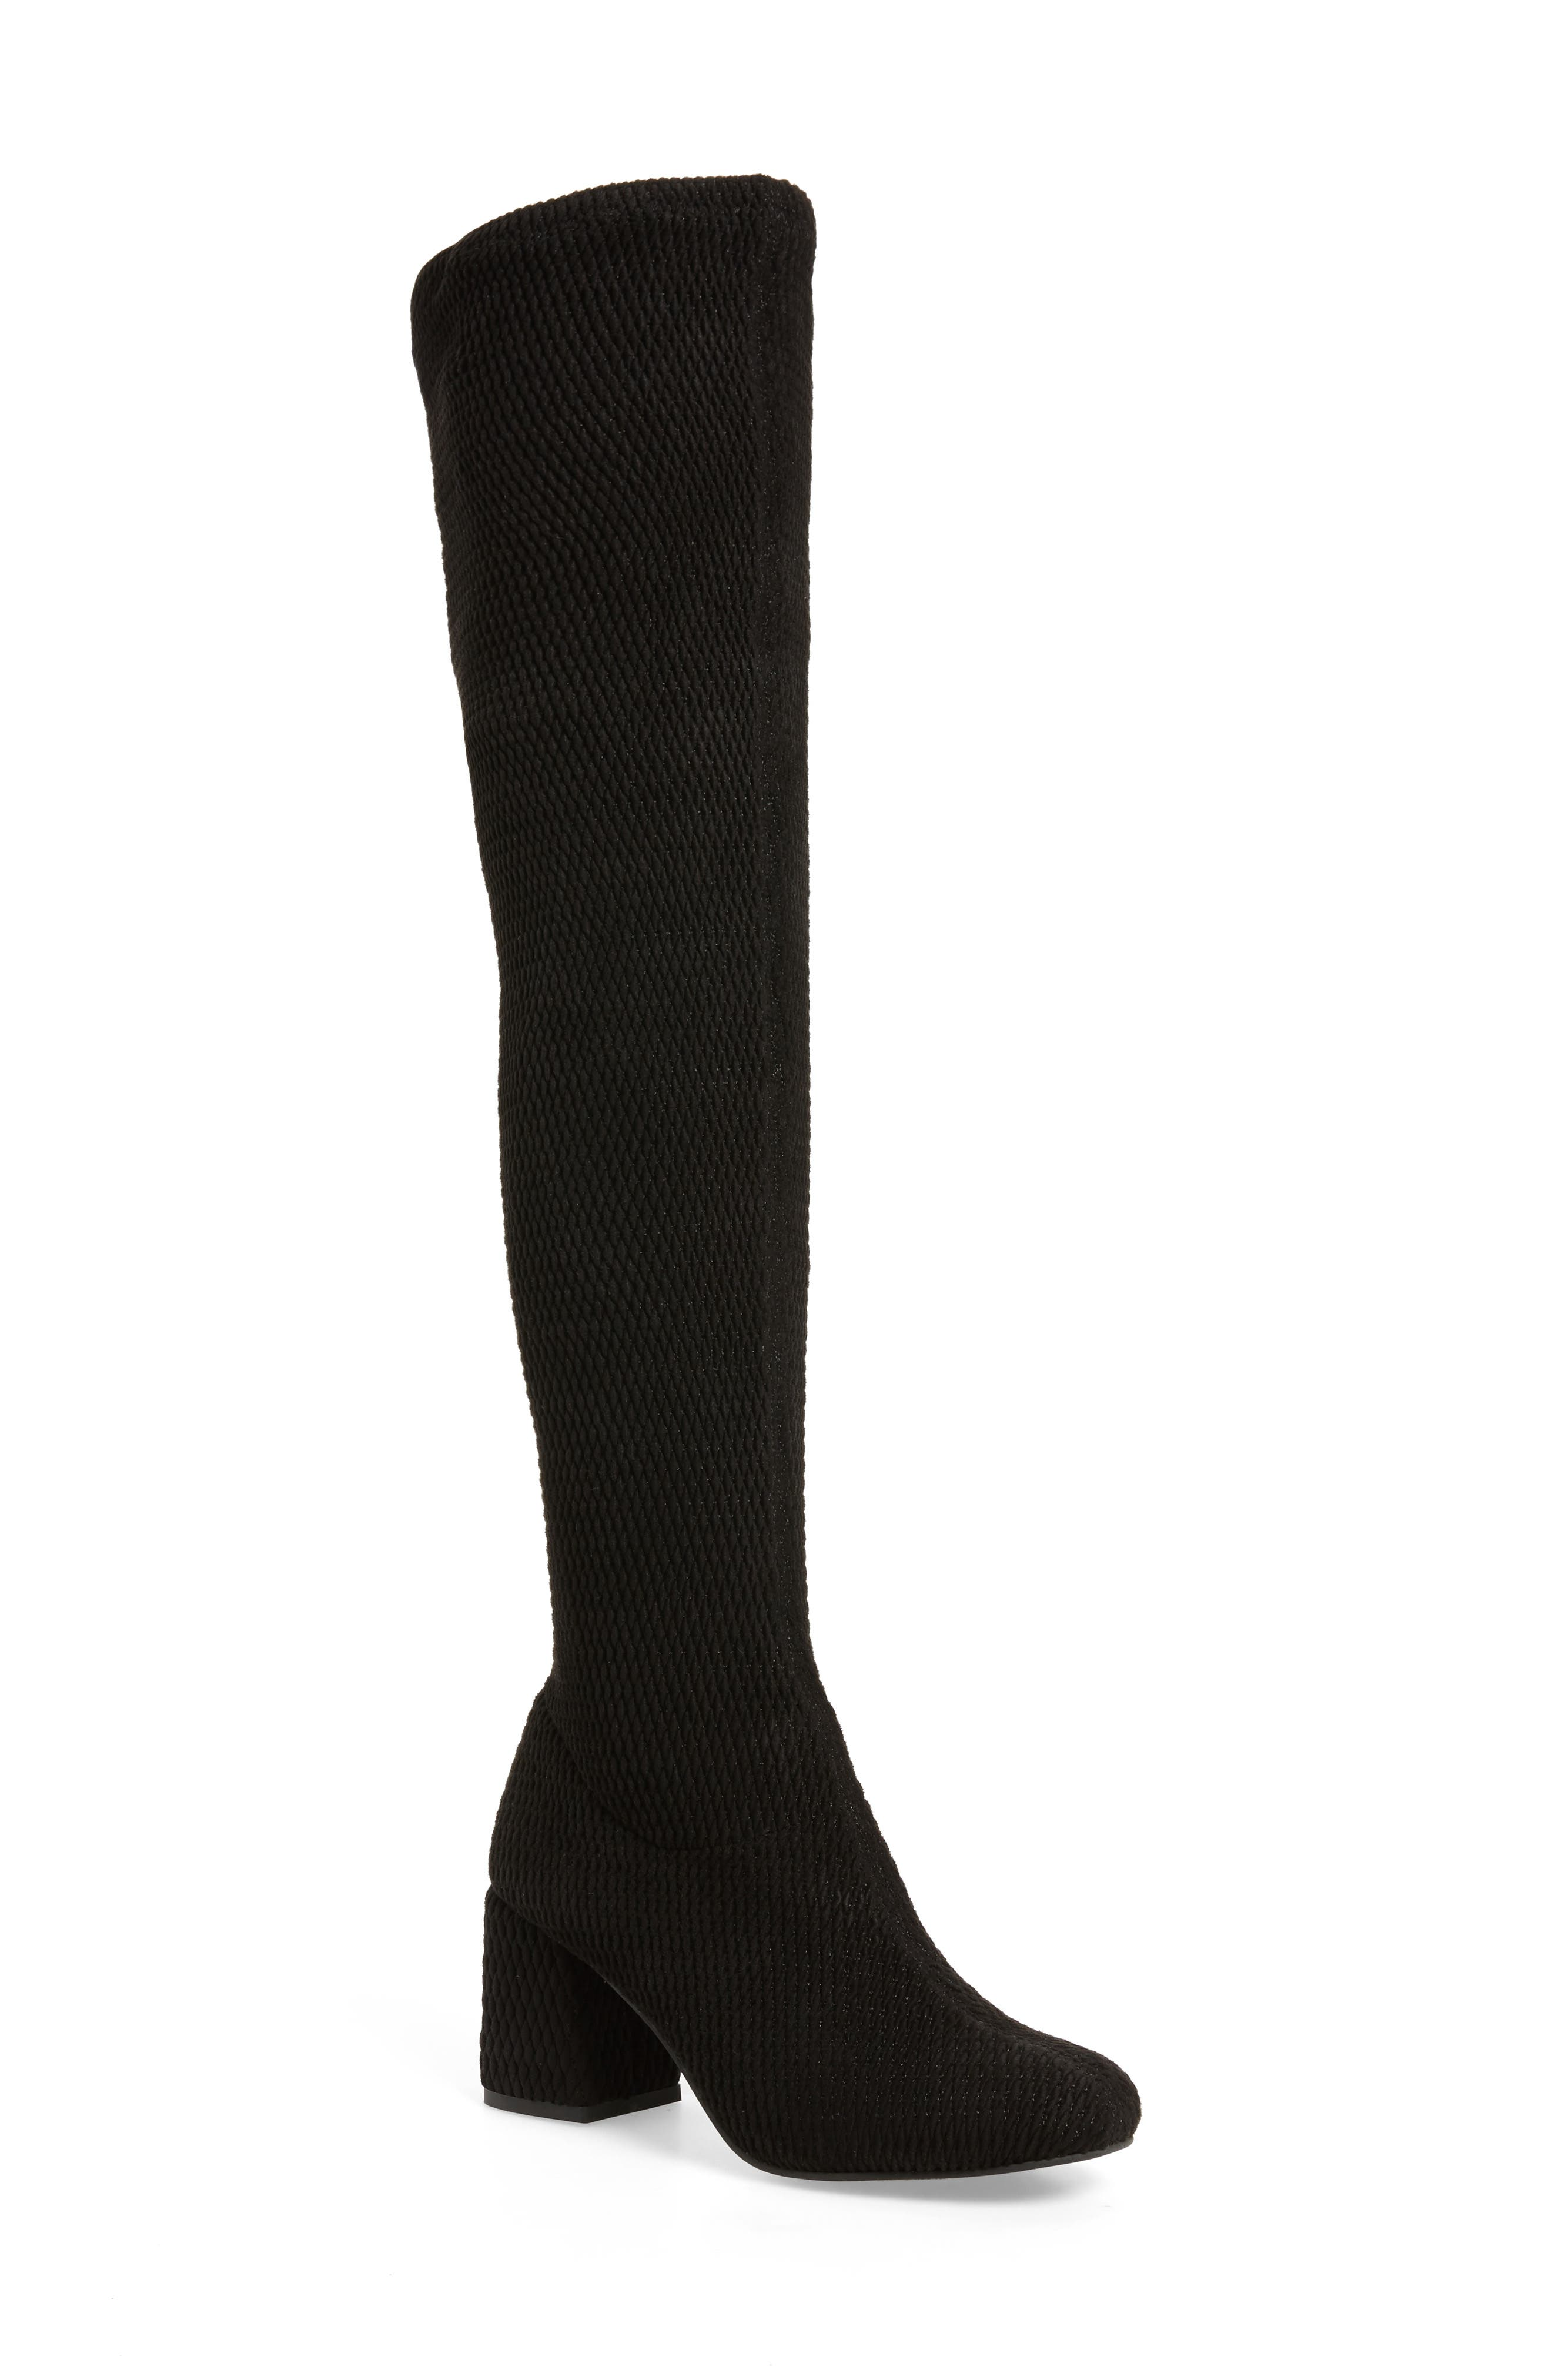 Alternate Image 1 Selected - Seychelles Act One Stretch Over the Knee Boot (Women)